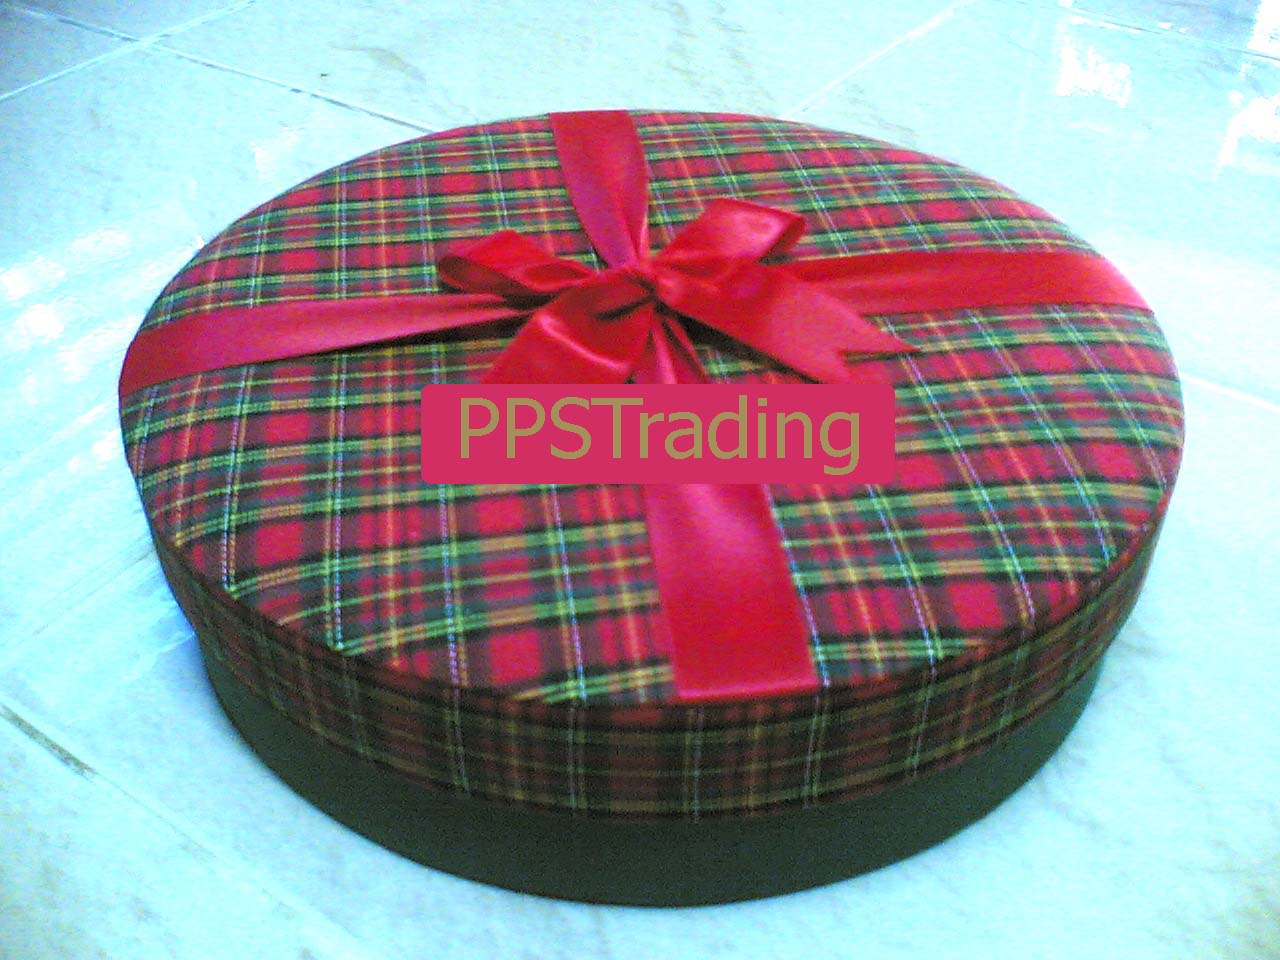 Accessories fabric box-PPS-21